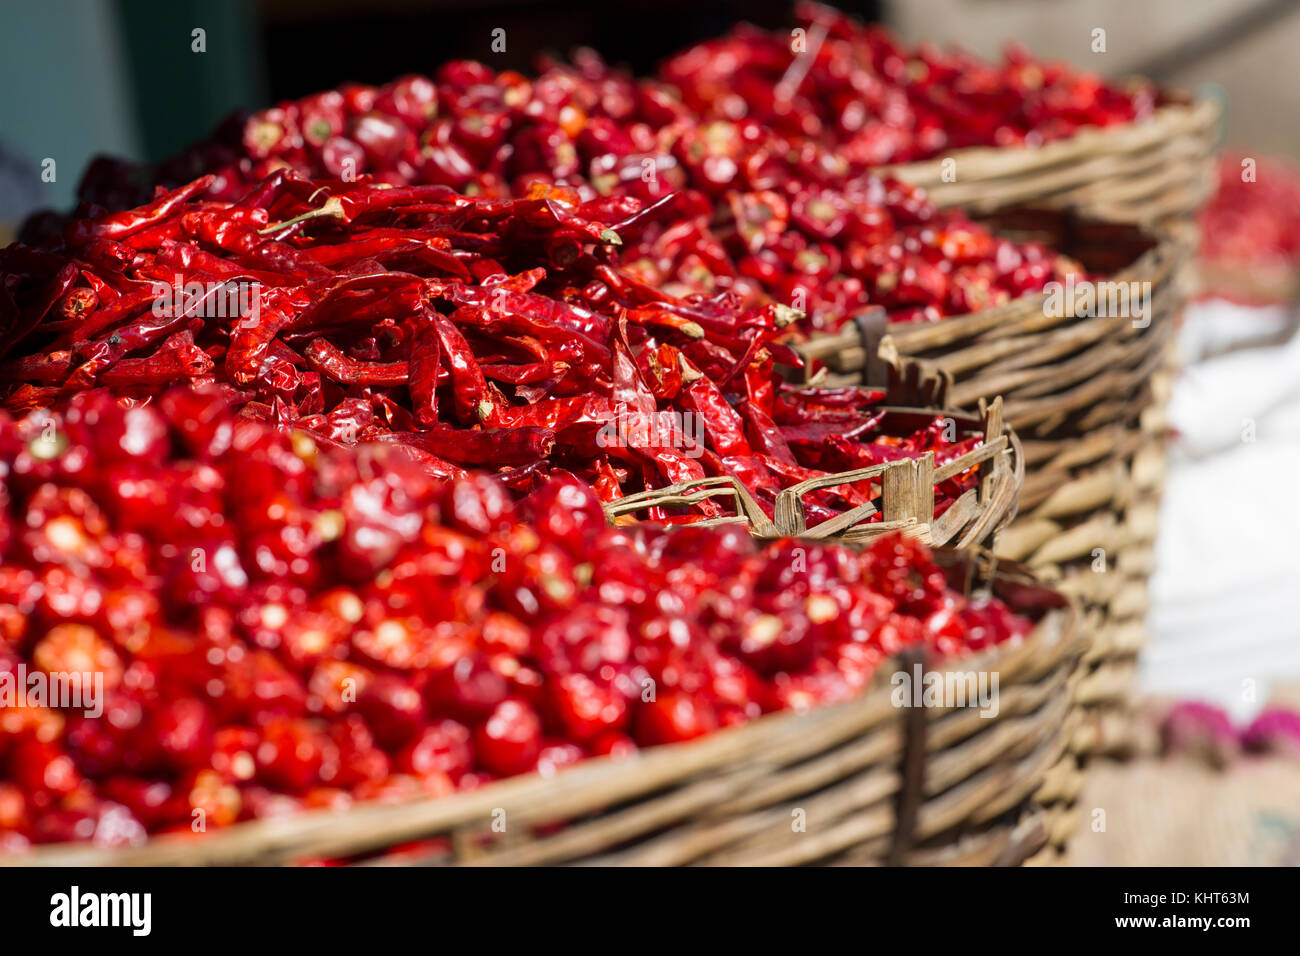 Dried Chili Peppers Bamboo Basket on wooden table,close up dried chili in basket close up red dried chili,Dried - Stock Image